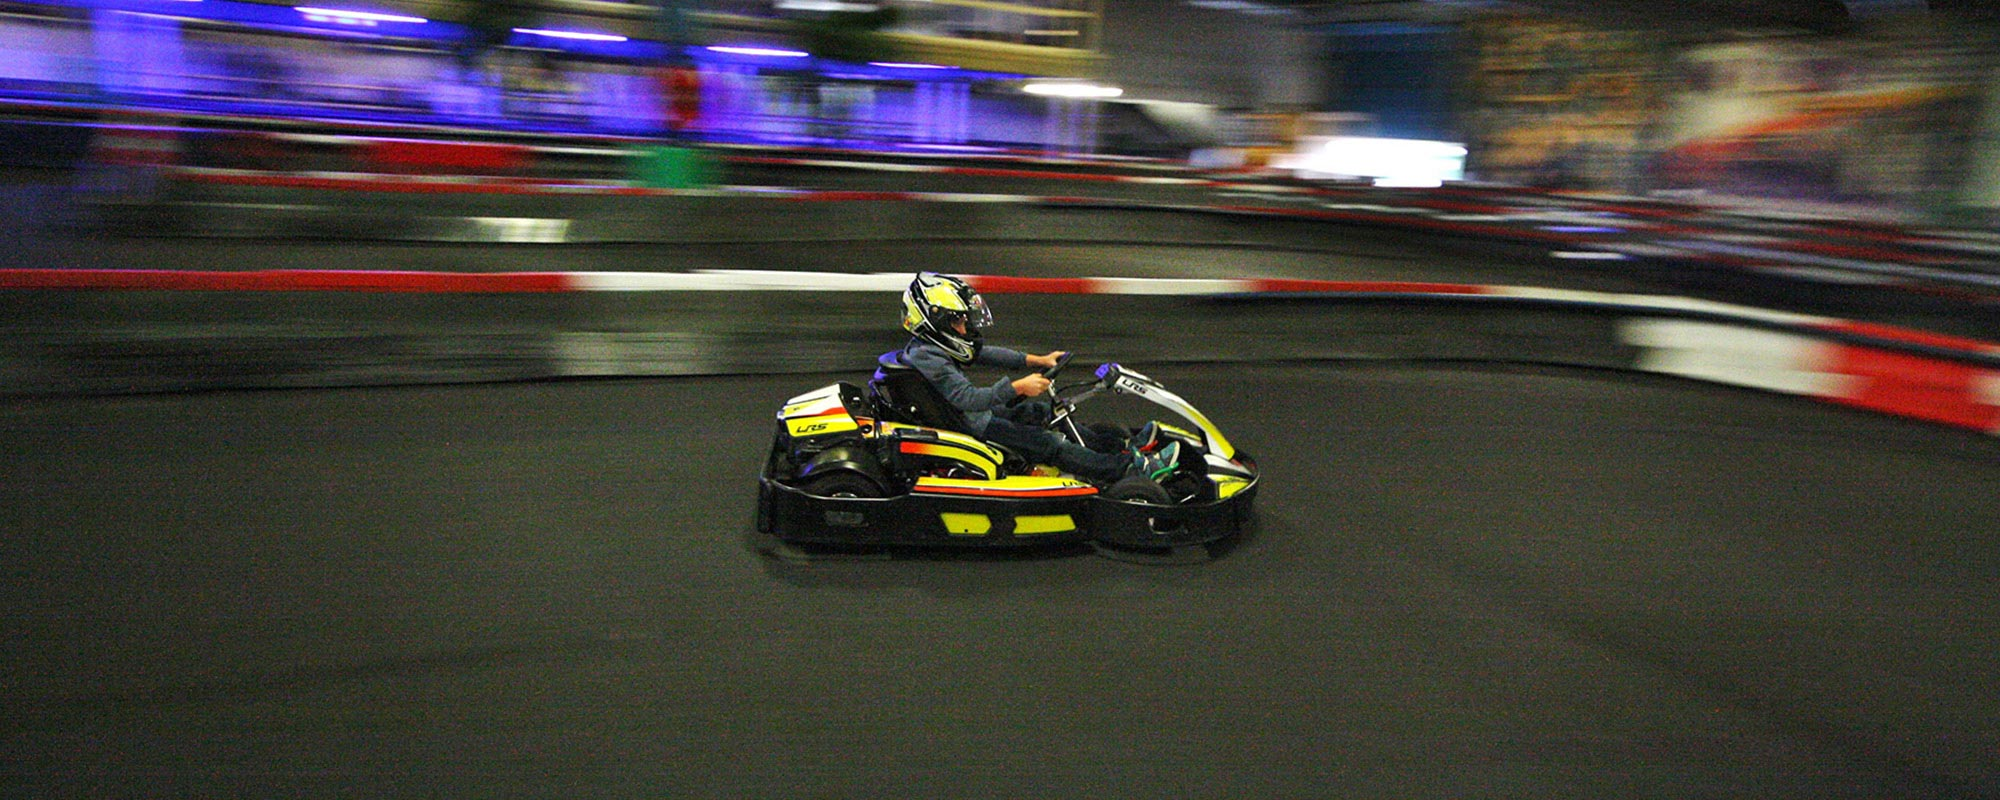 ebafkc-juniorkarting-2000x800-04